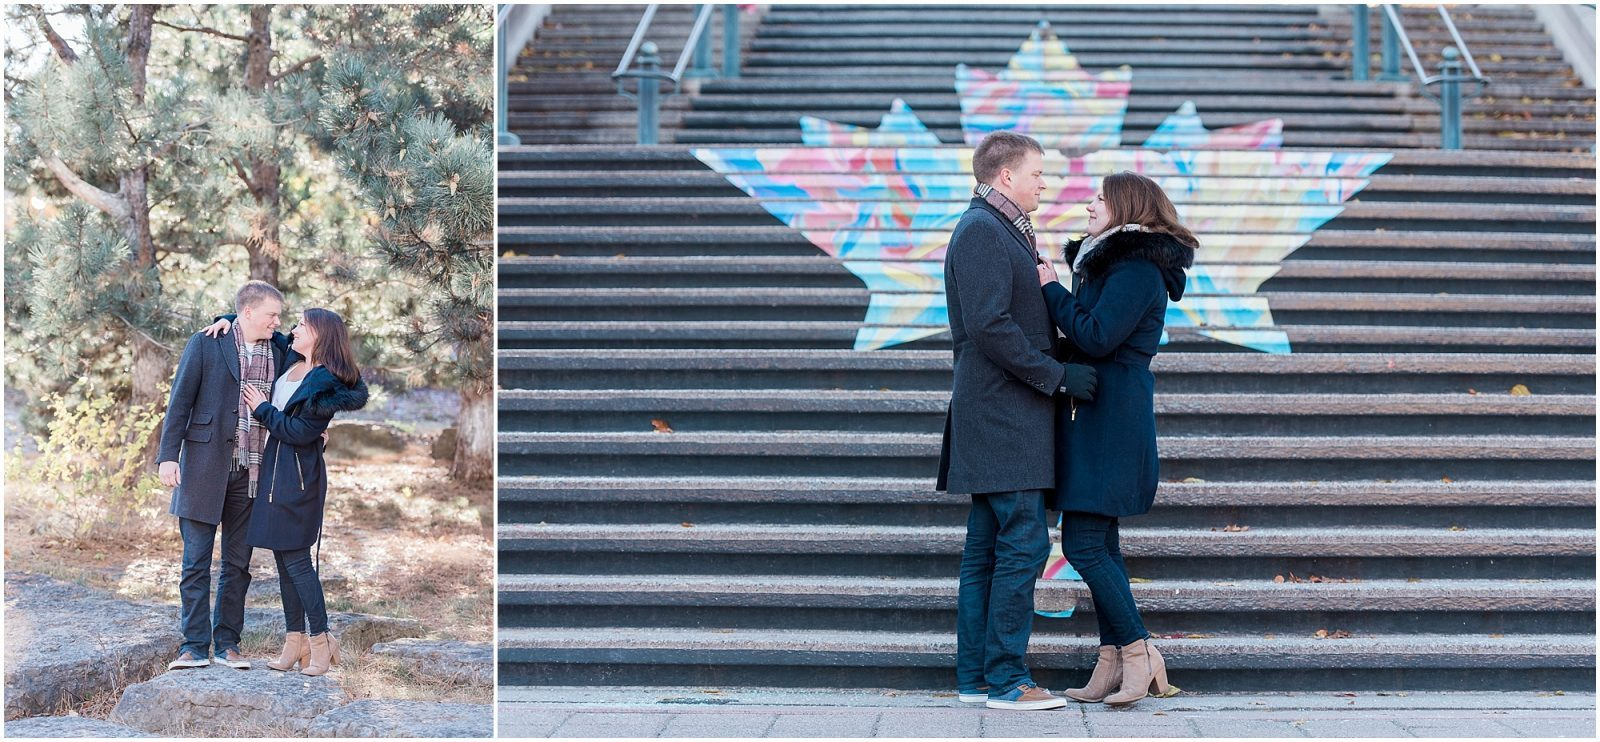 engagement at Major's Hill Park in Ottawa - engagement photography Ottawa